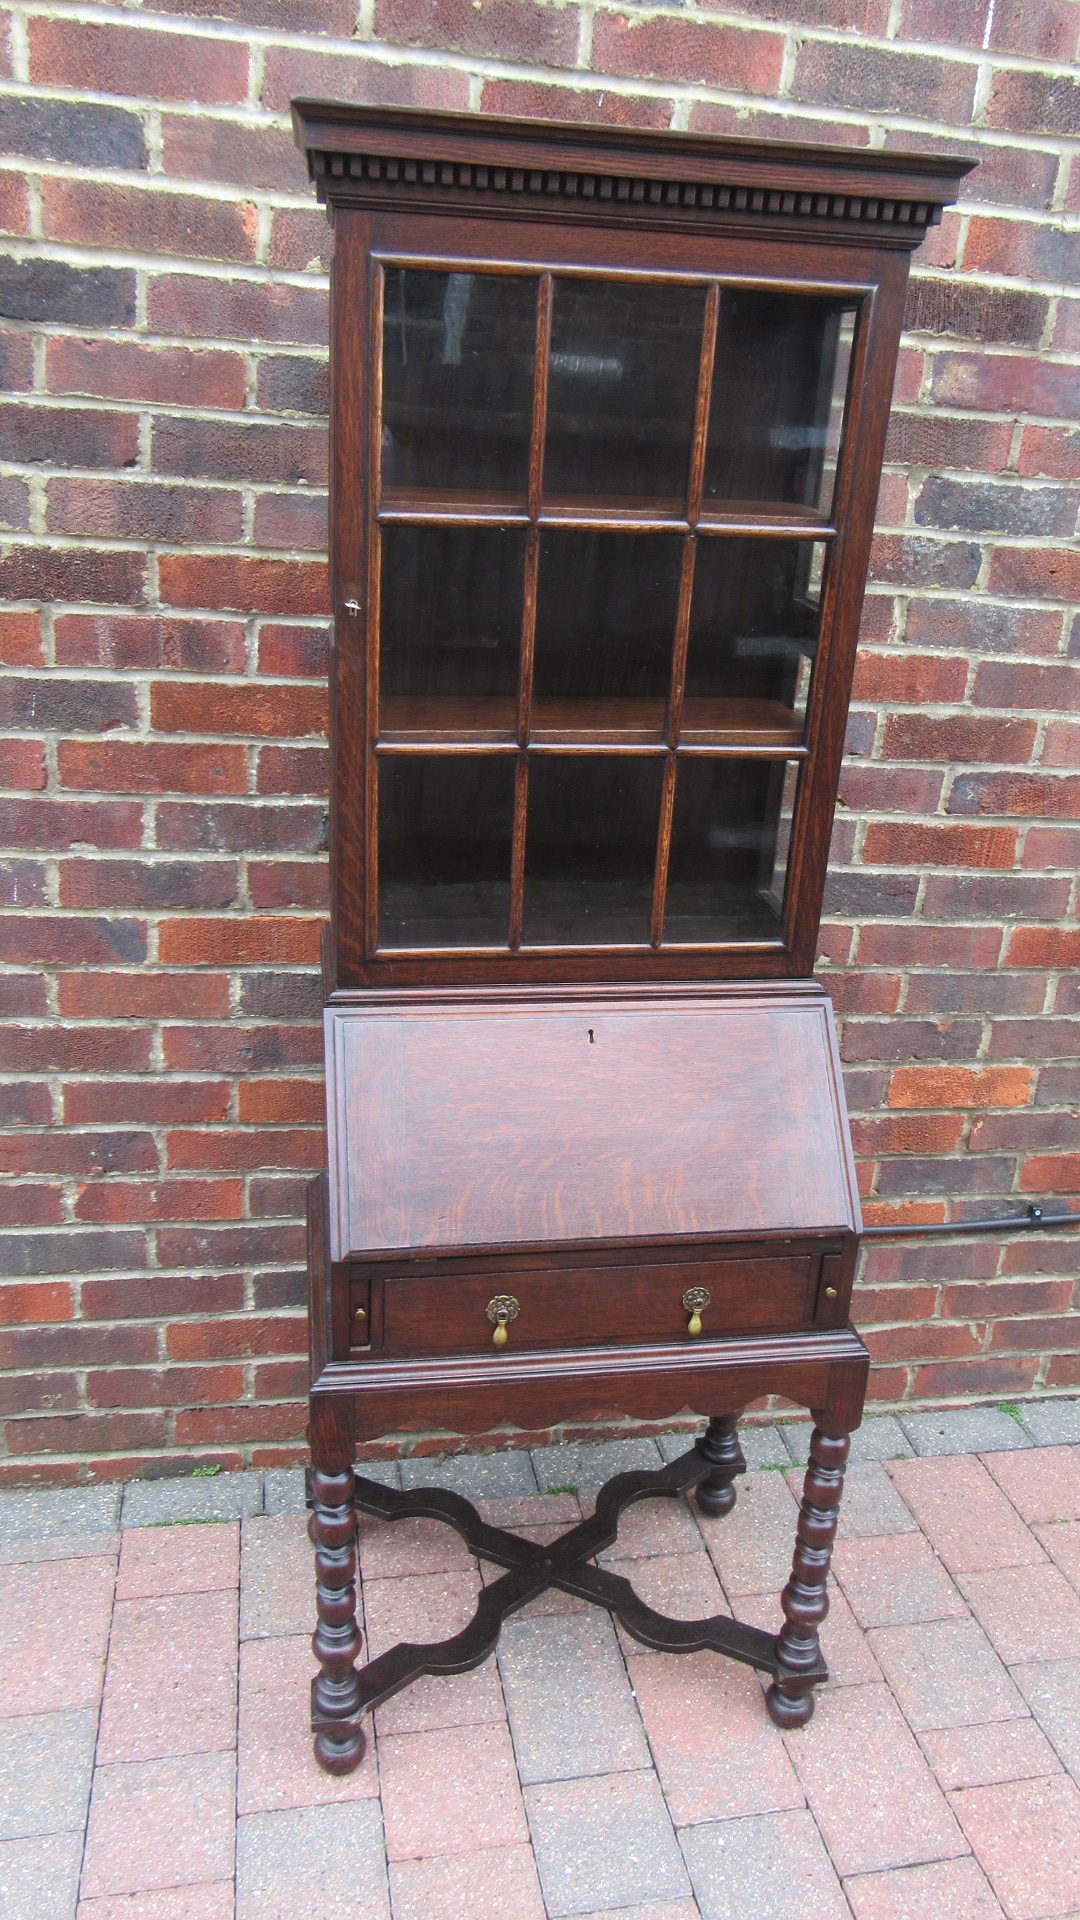 ANTIQUE JACOBEAN STYLE OAK BUREAU BOOKCASE